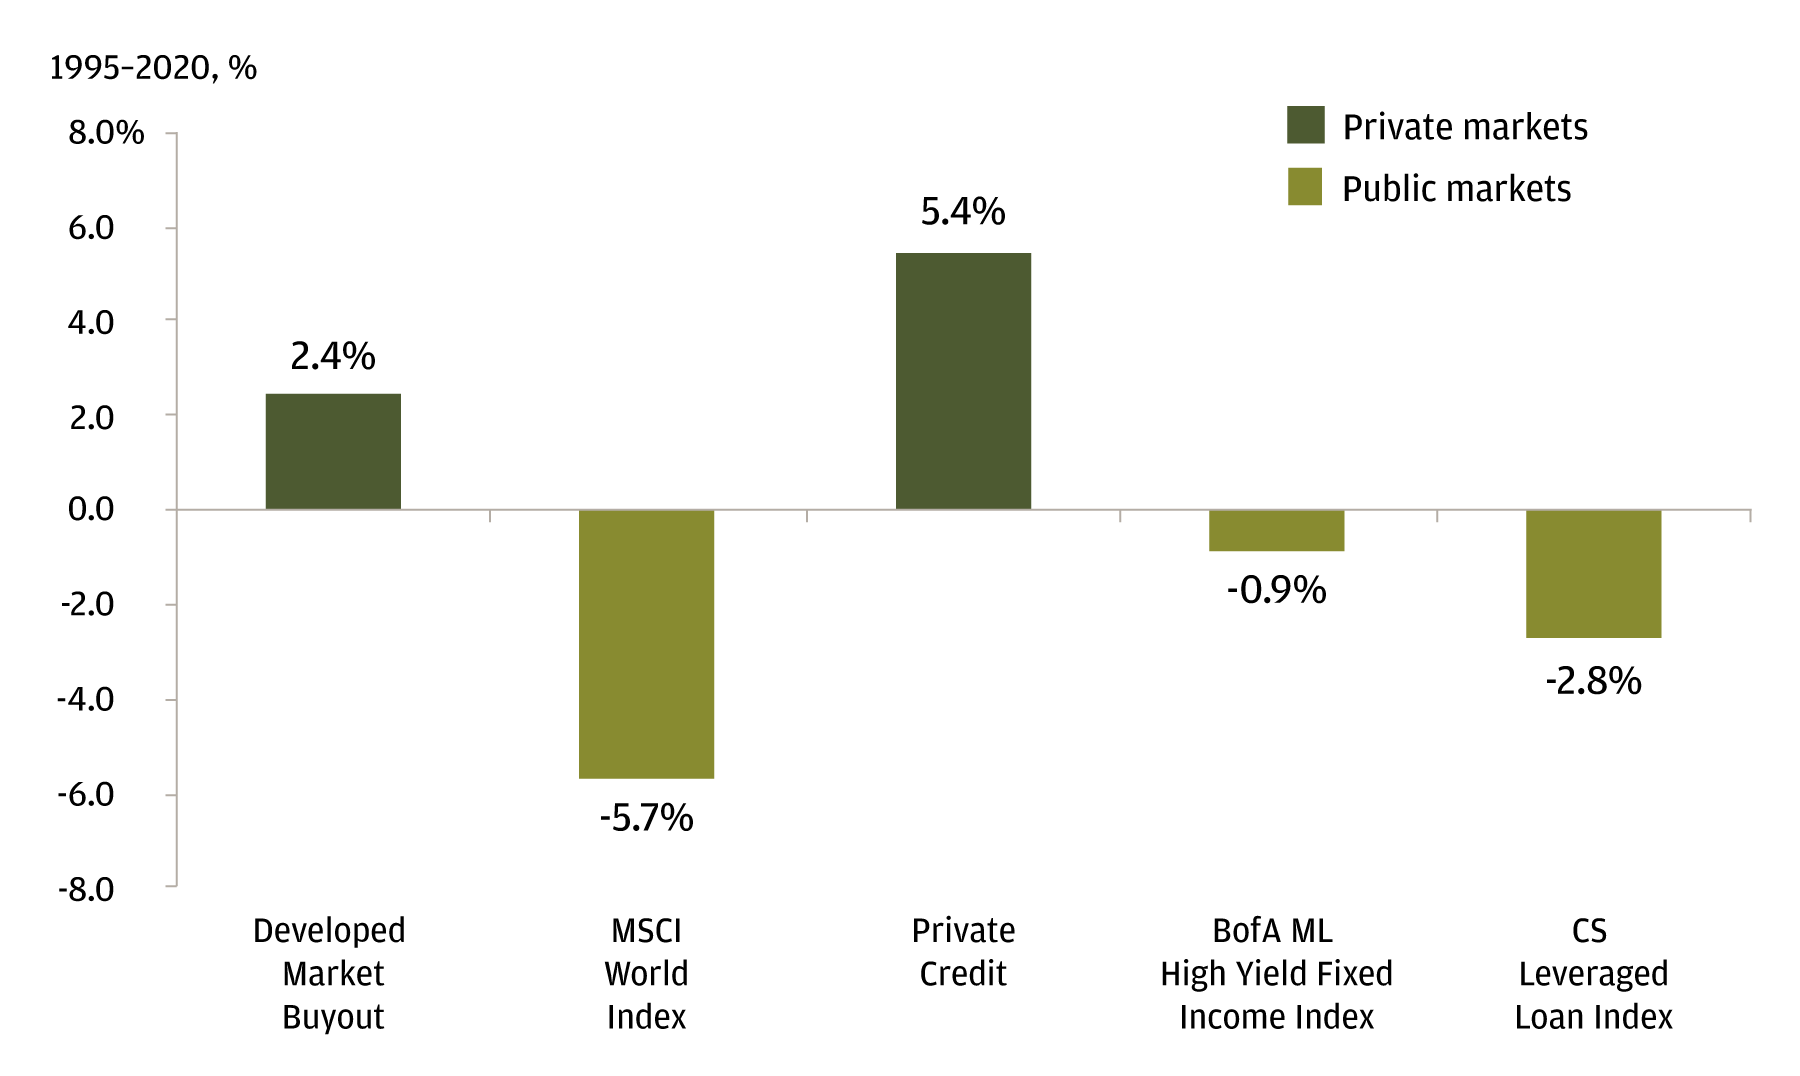 Private versus public market performance over the last 5 years.